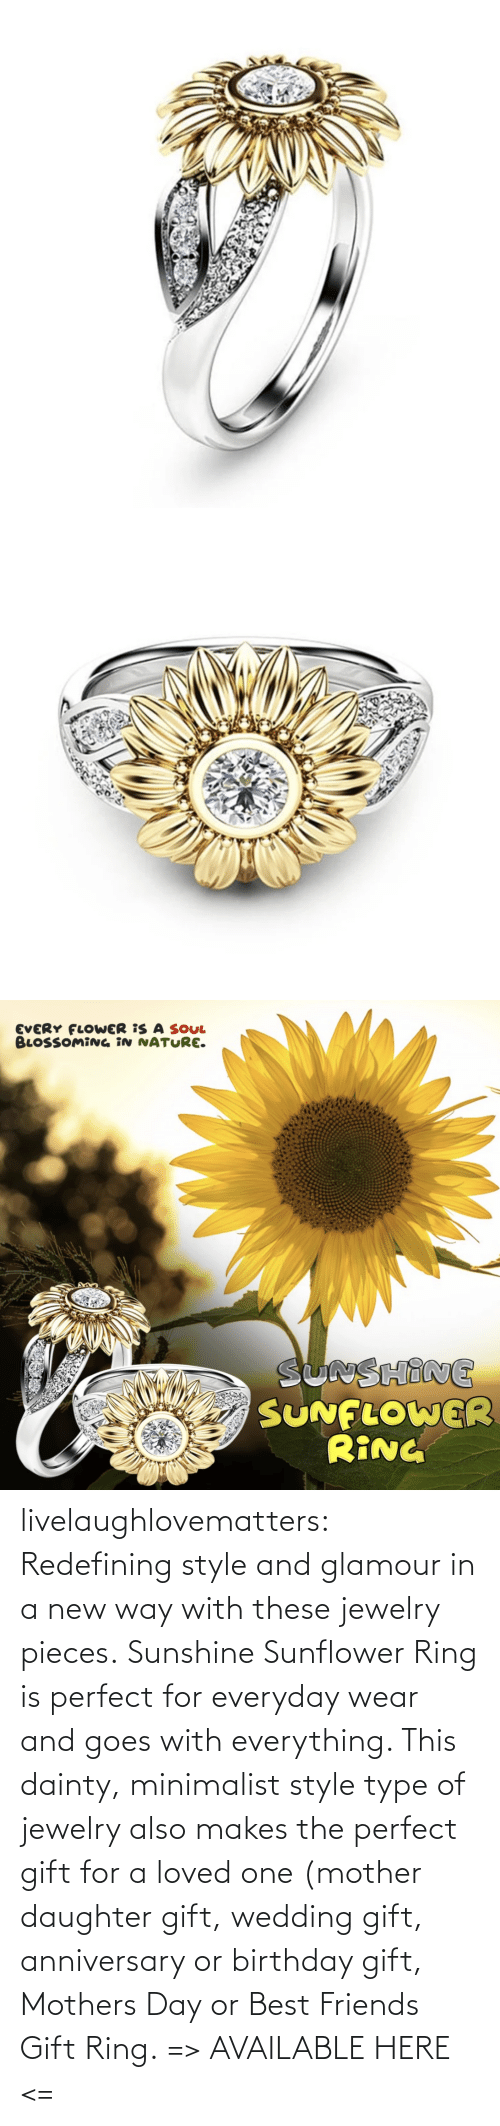 day: livelaughlovematters:  Redefining style and glamour in a new way with these jewelry pieces. Sunshine Sunflower Ring is perfect for everyday wear and goes with everything. This dainty, minimalist style type of jewelry also makes the perfect gift for a loved one (mother daughter gift, wedding gift, anniversary or birthday gift, Mothers Day or Best Friends Gift Ring. => AVAILABLE HERE <=